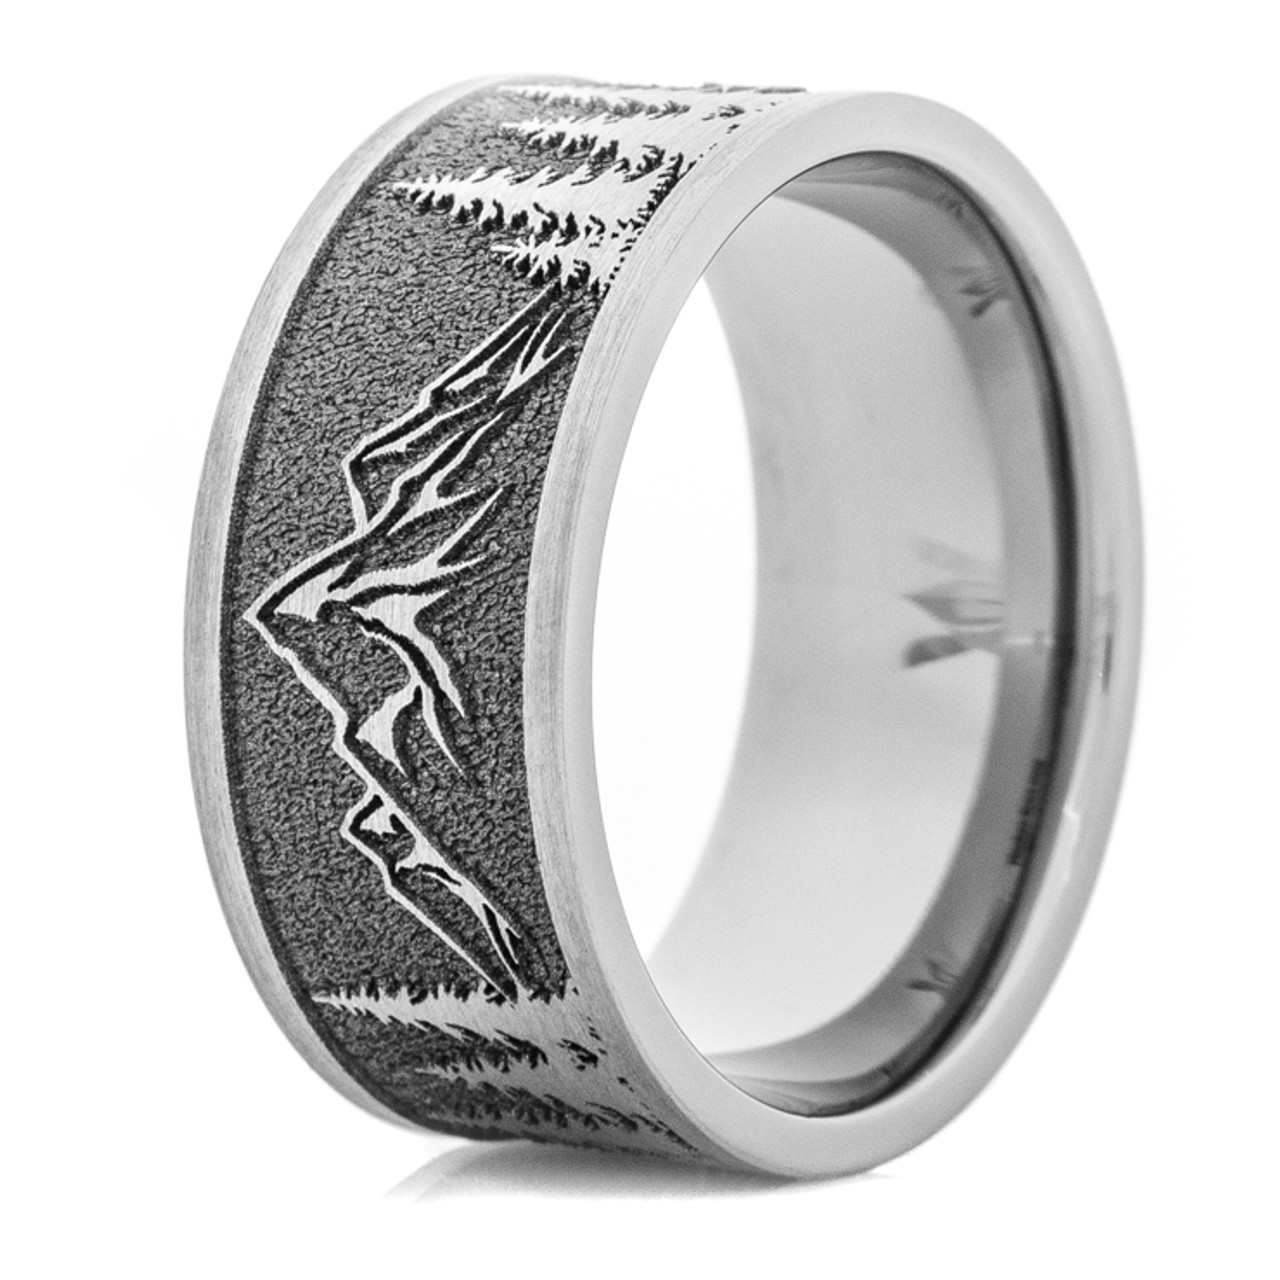 Mens Wedding Bands Titanium.Men S Laser Carved Titanium Mountain Range Wedding Band